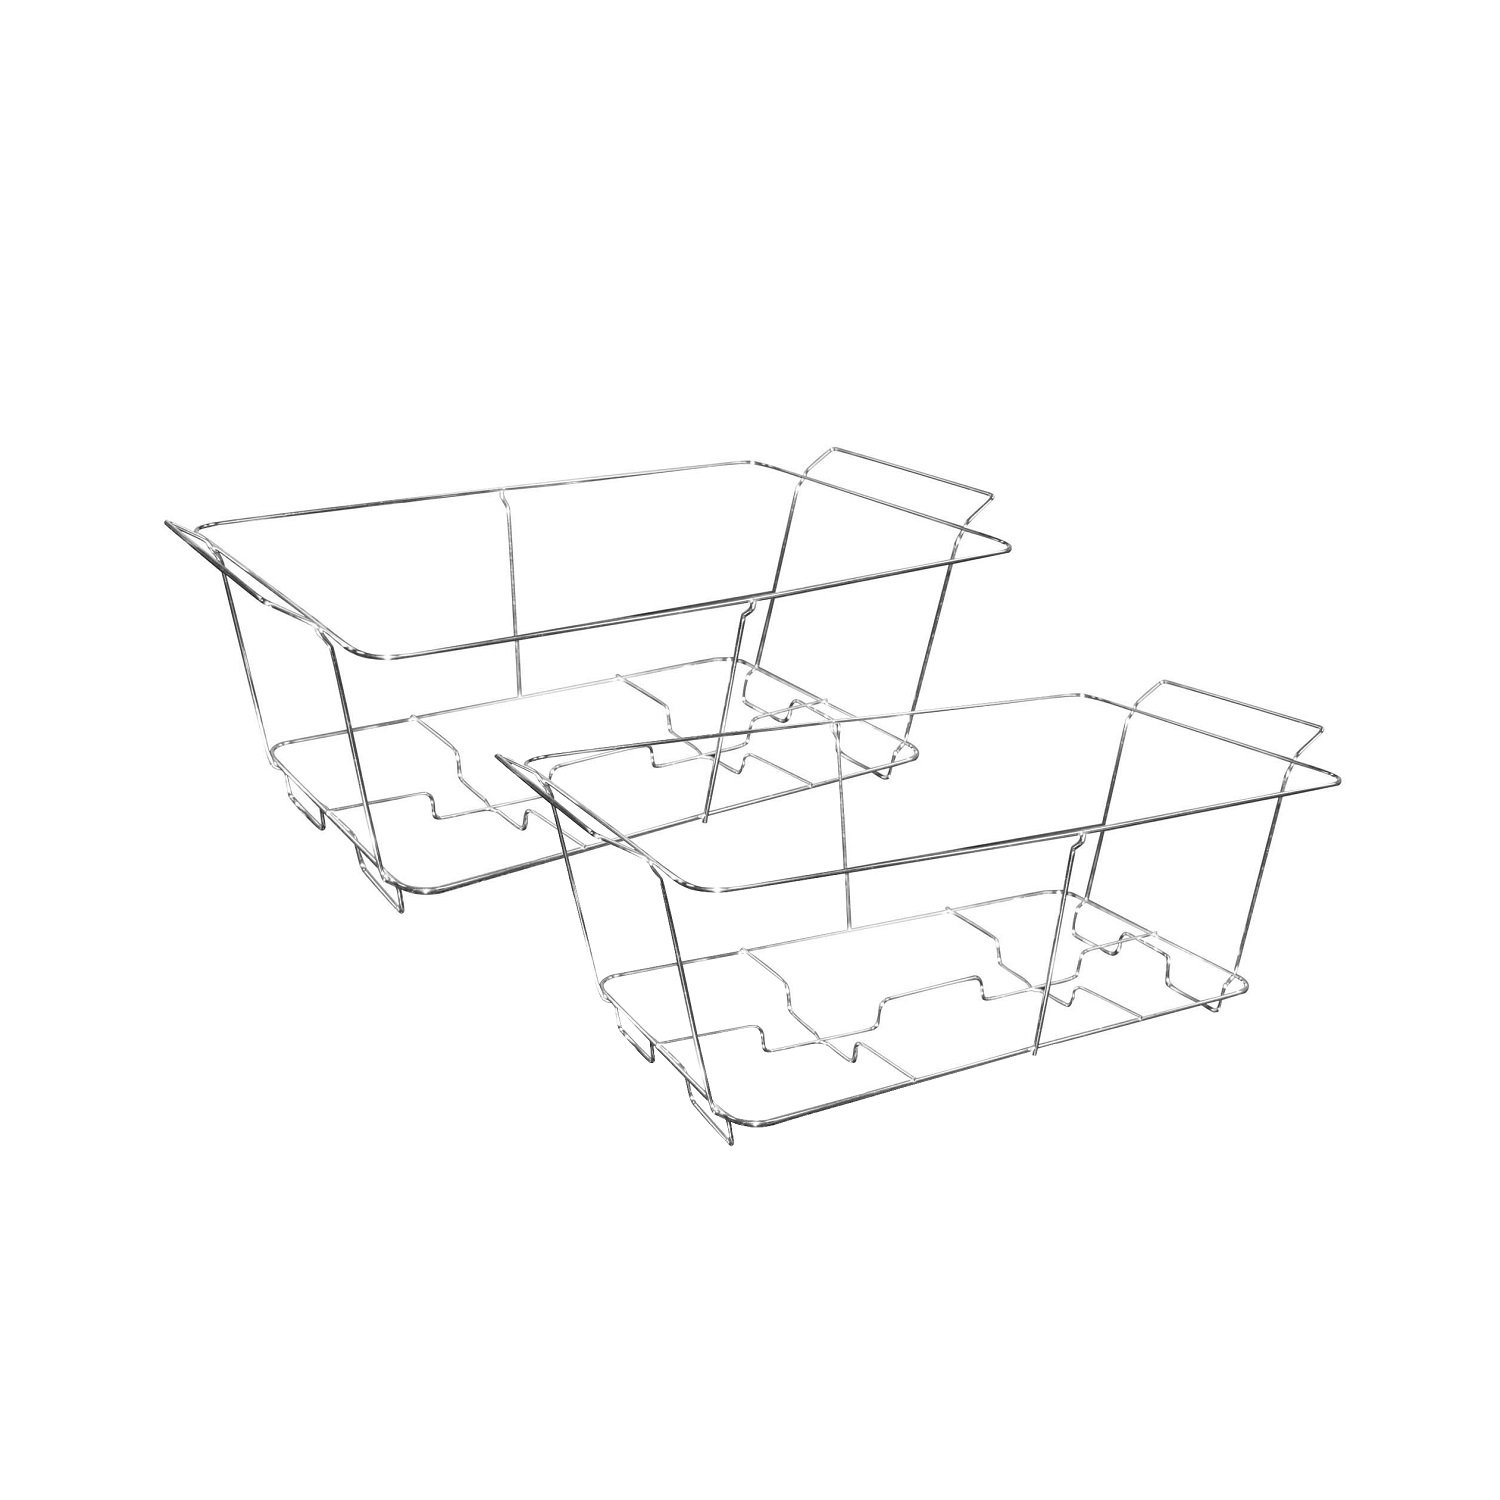 Party Essentials 2-Count Full Size Deluxe Chafing Racks, Chrome